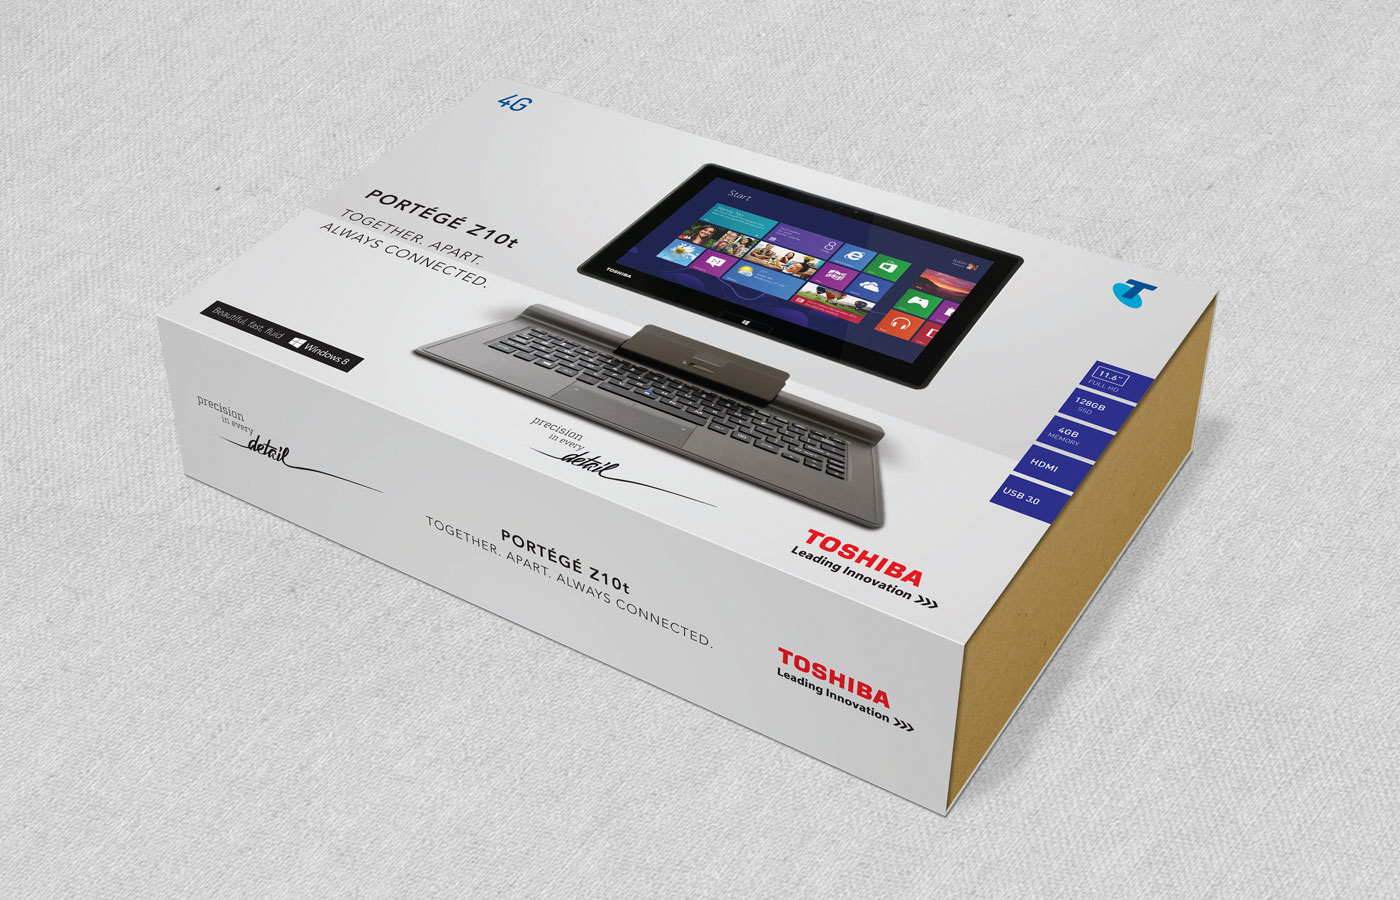 Toshiba packaging Z20t notebook tablet testra